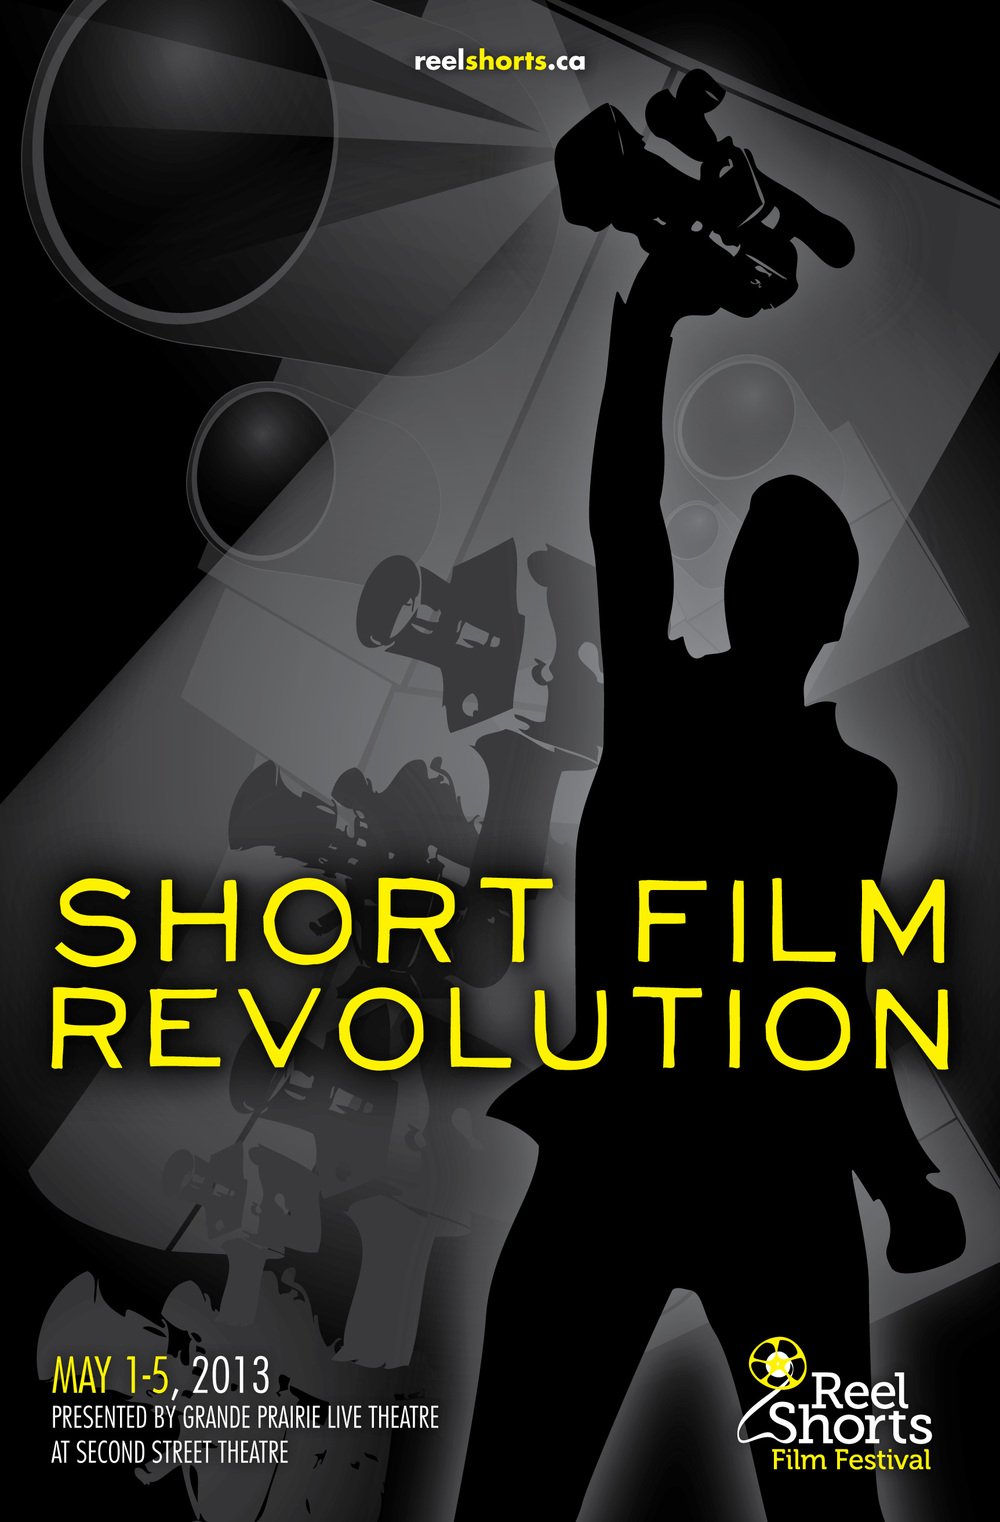 Poster Design: Reel Shorts Film Festival